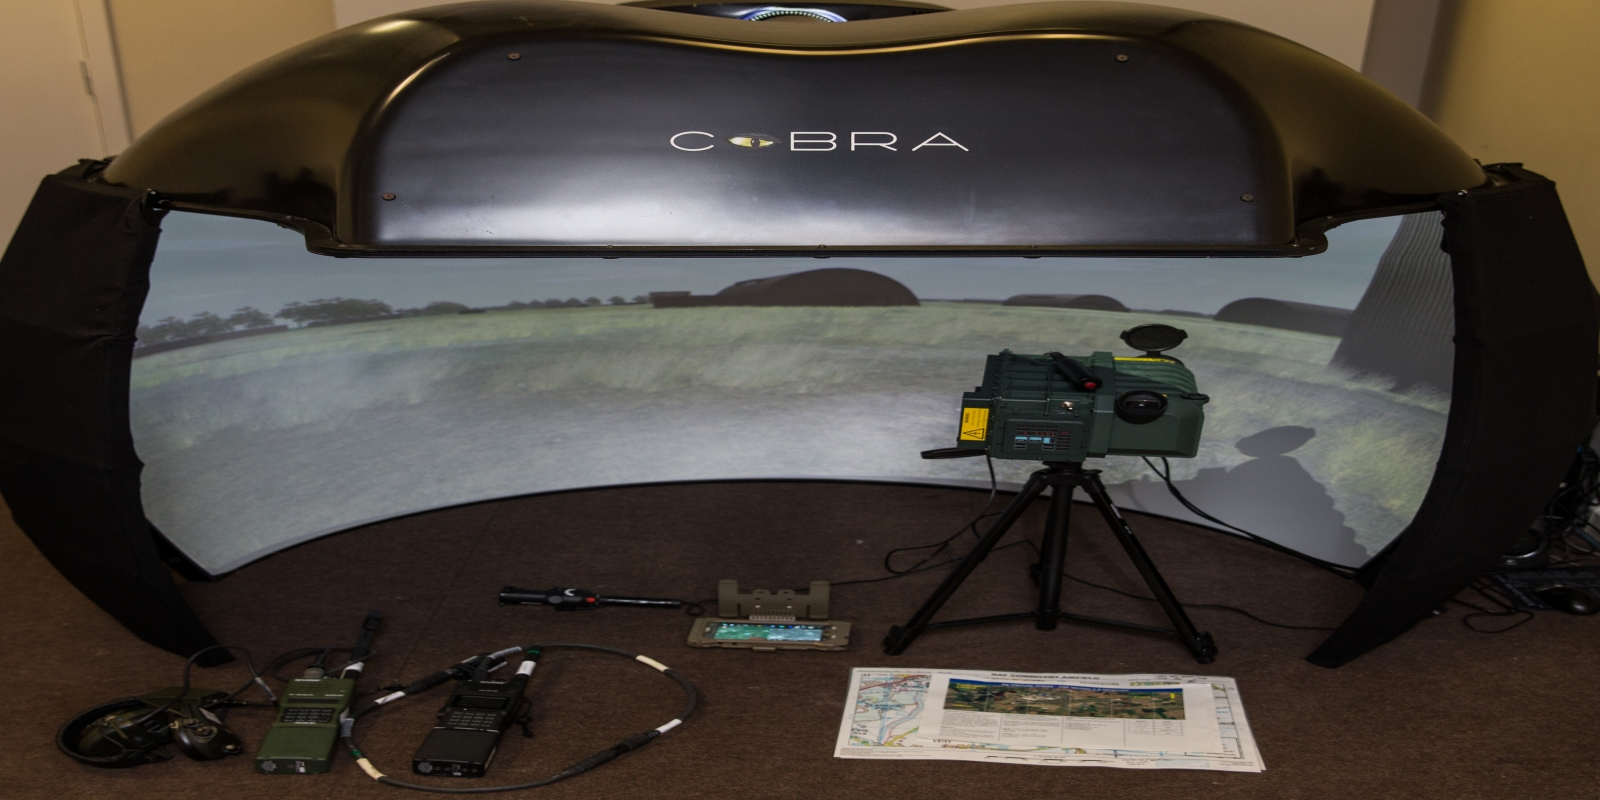 Deployable Cobra JTAC system, with Harris 152 radio and 7800-T downlink receiver, emulated LF28 LTD, emulated IZLID Ultra laser pointer and ATAK, pushing situational awareness software and downlinks.